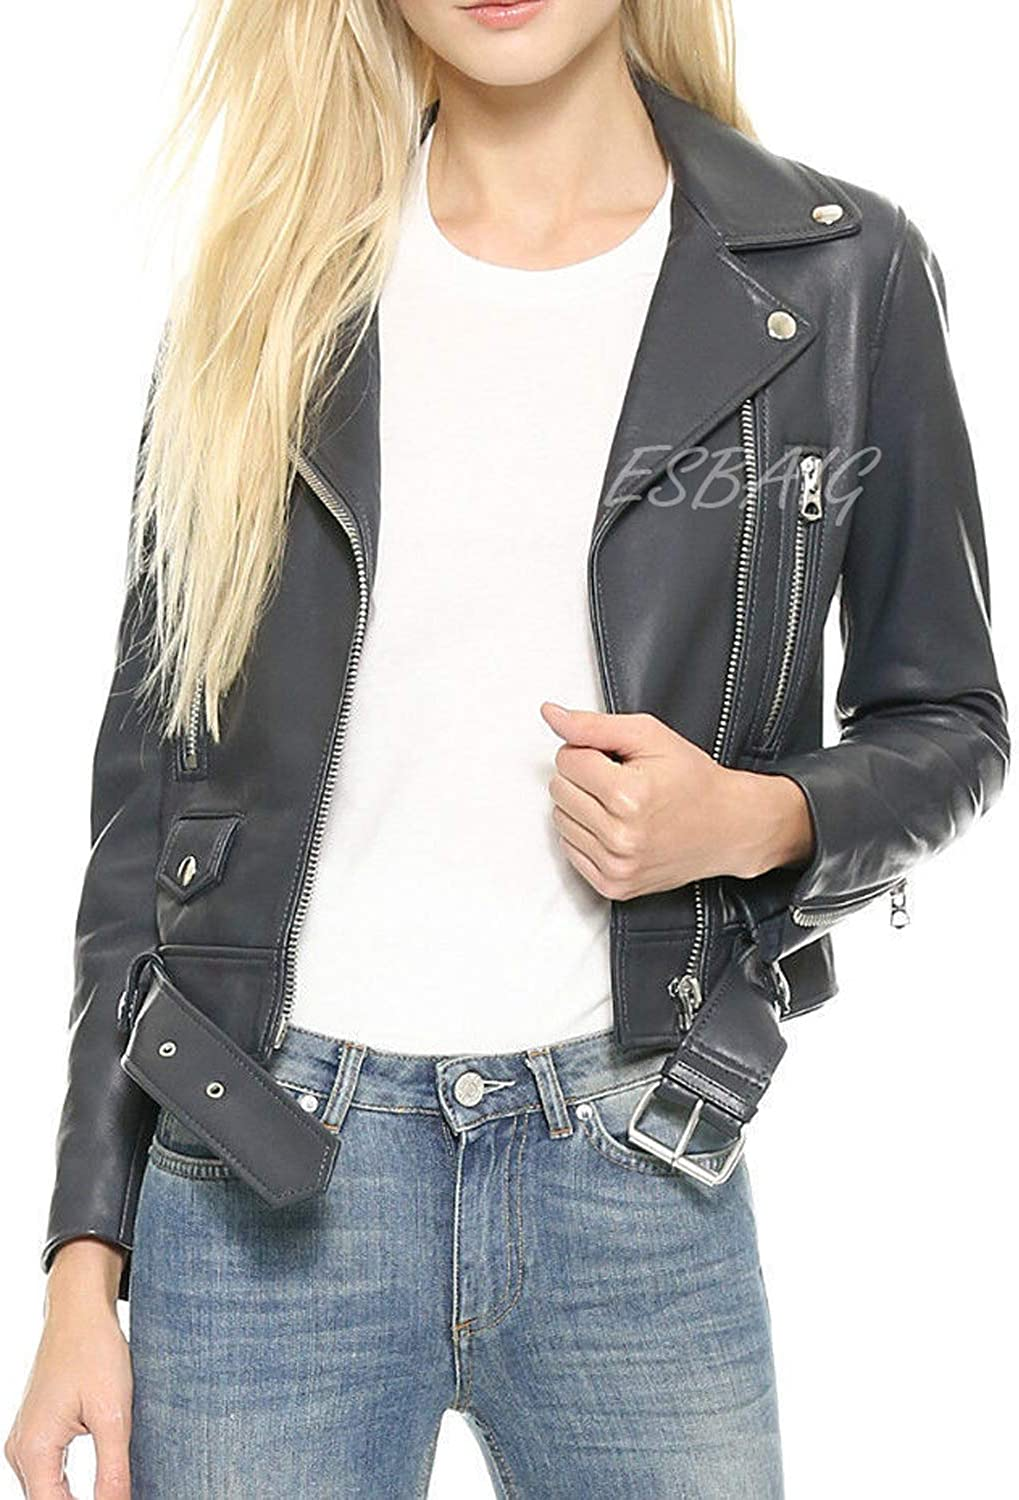 ESBAIG Womens Leather Jackets Stylish Motorcycle Bomber Biker Real Lambskin Leather Jacket for Women 520